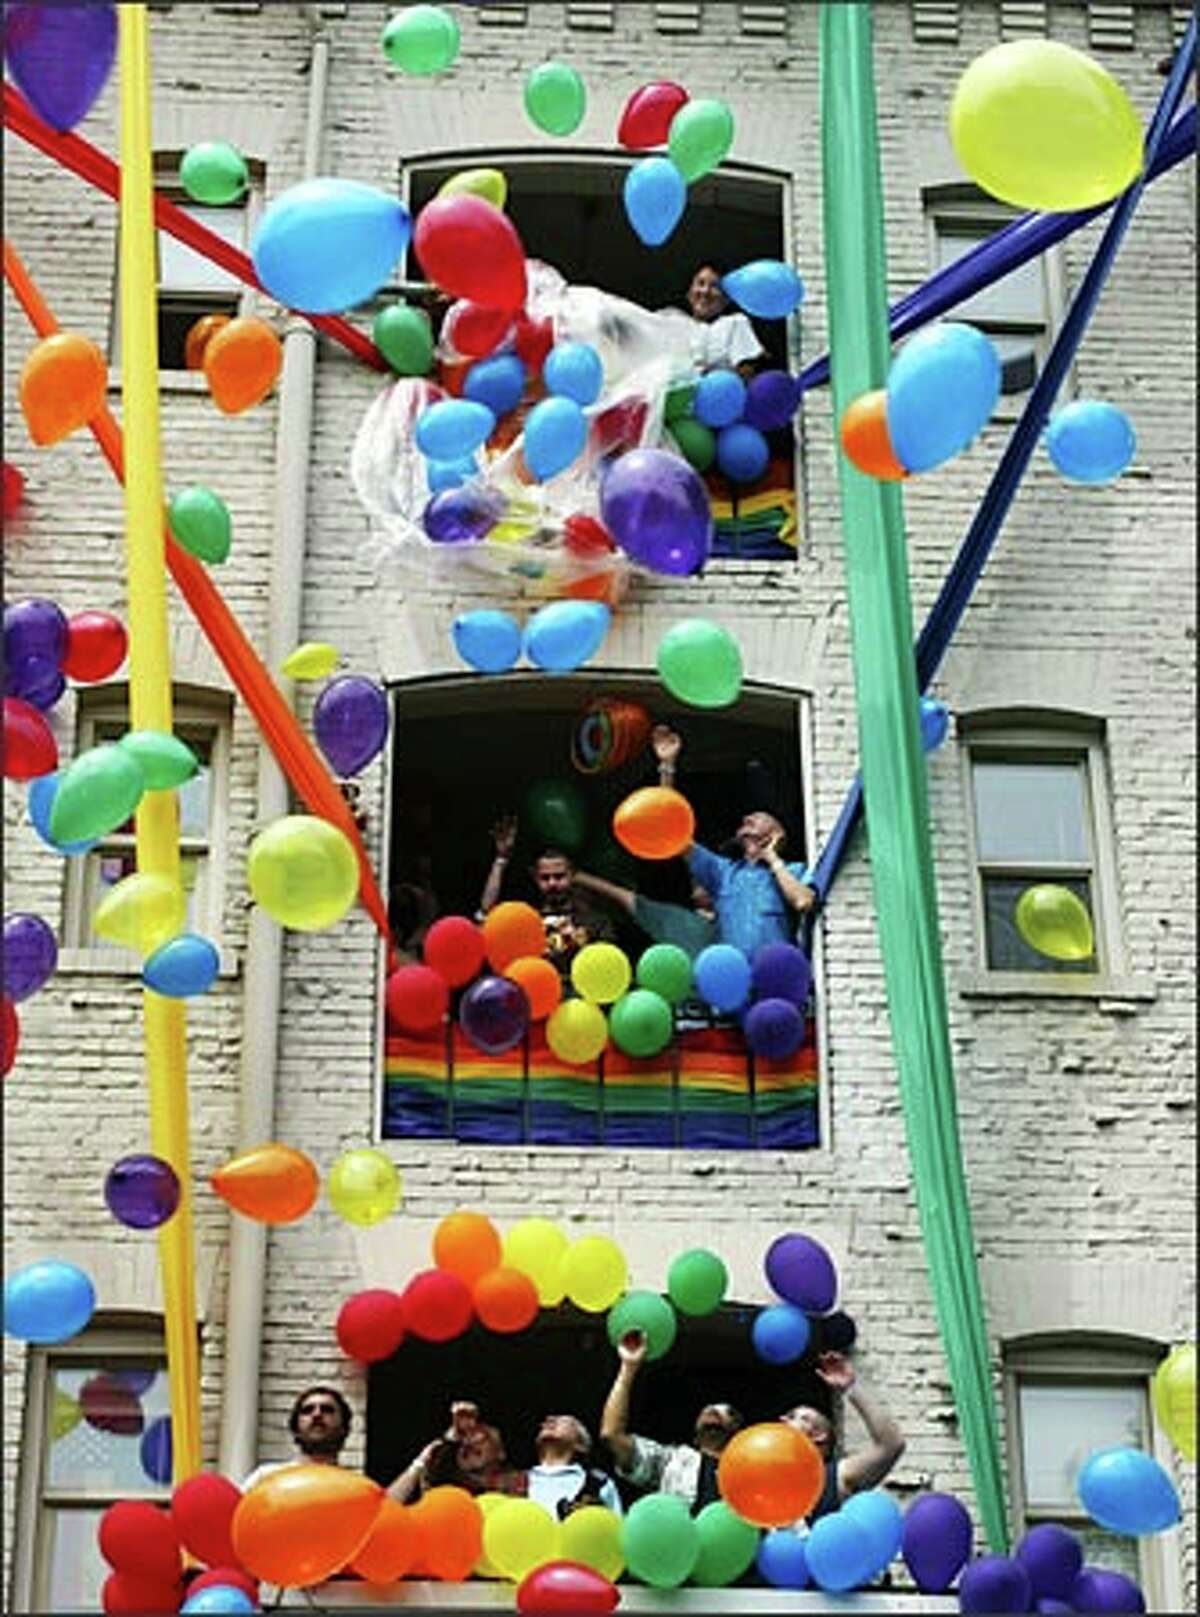 Colorful balloons cascade out of a fourth-floor window on Broadway during the Gay Pride parade on Sunday.